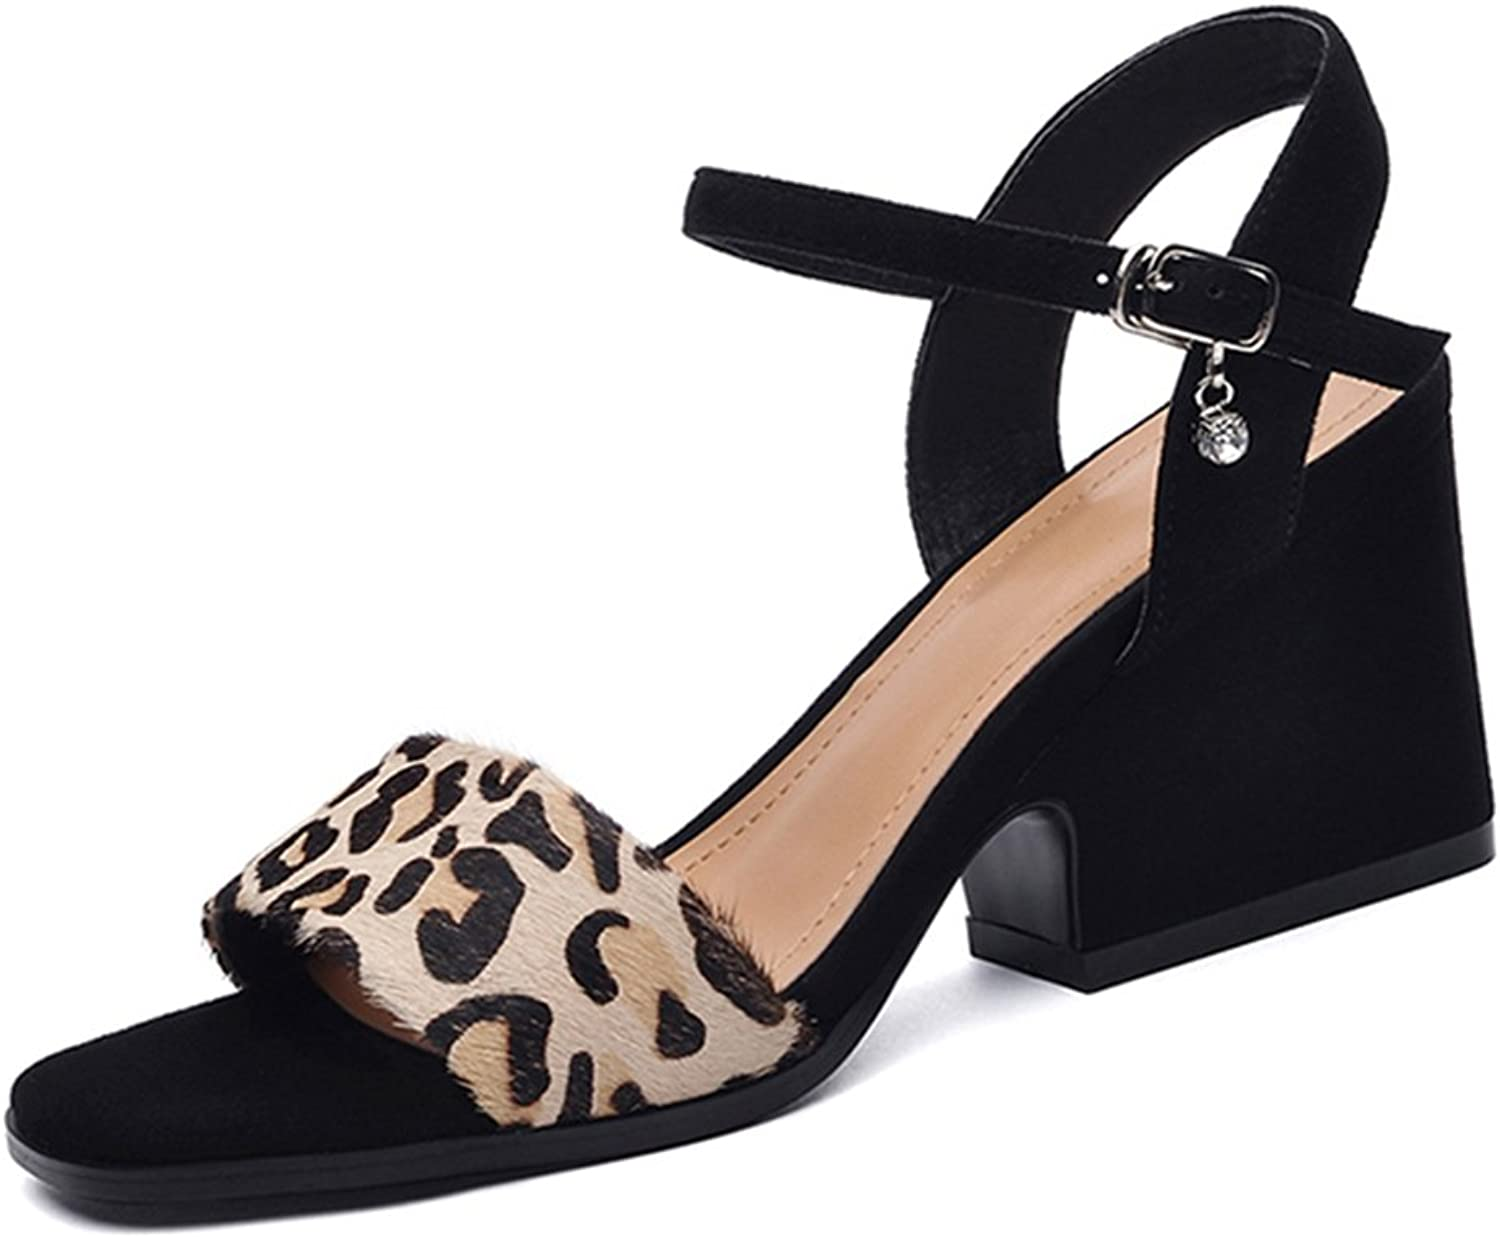 Summer Sandals Female Sexy Simple High Heels Women's shoes (color   Brown, Size   37)